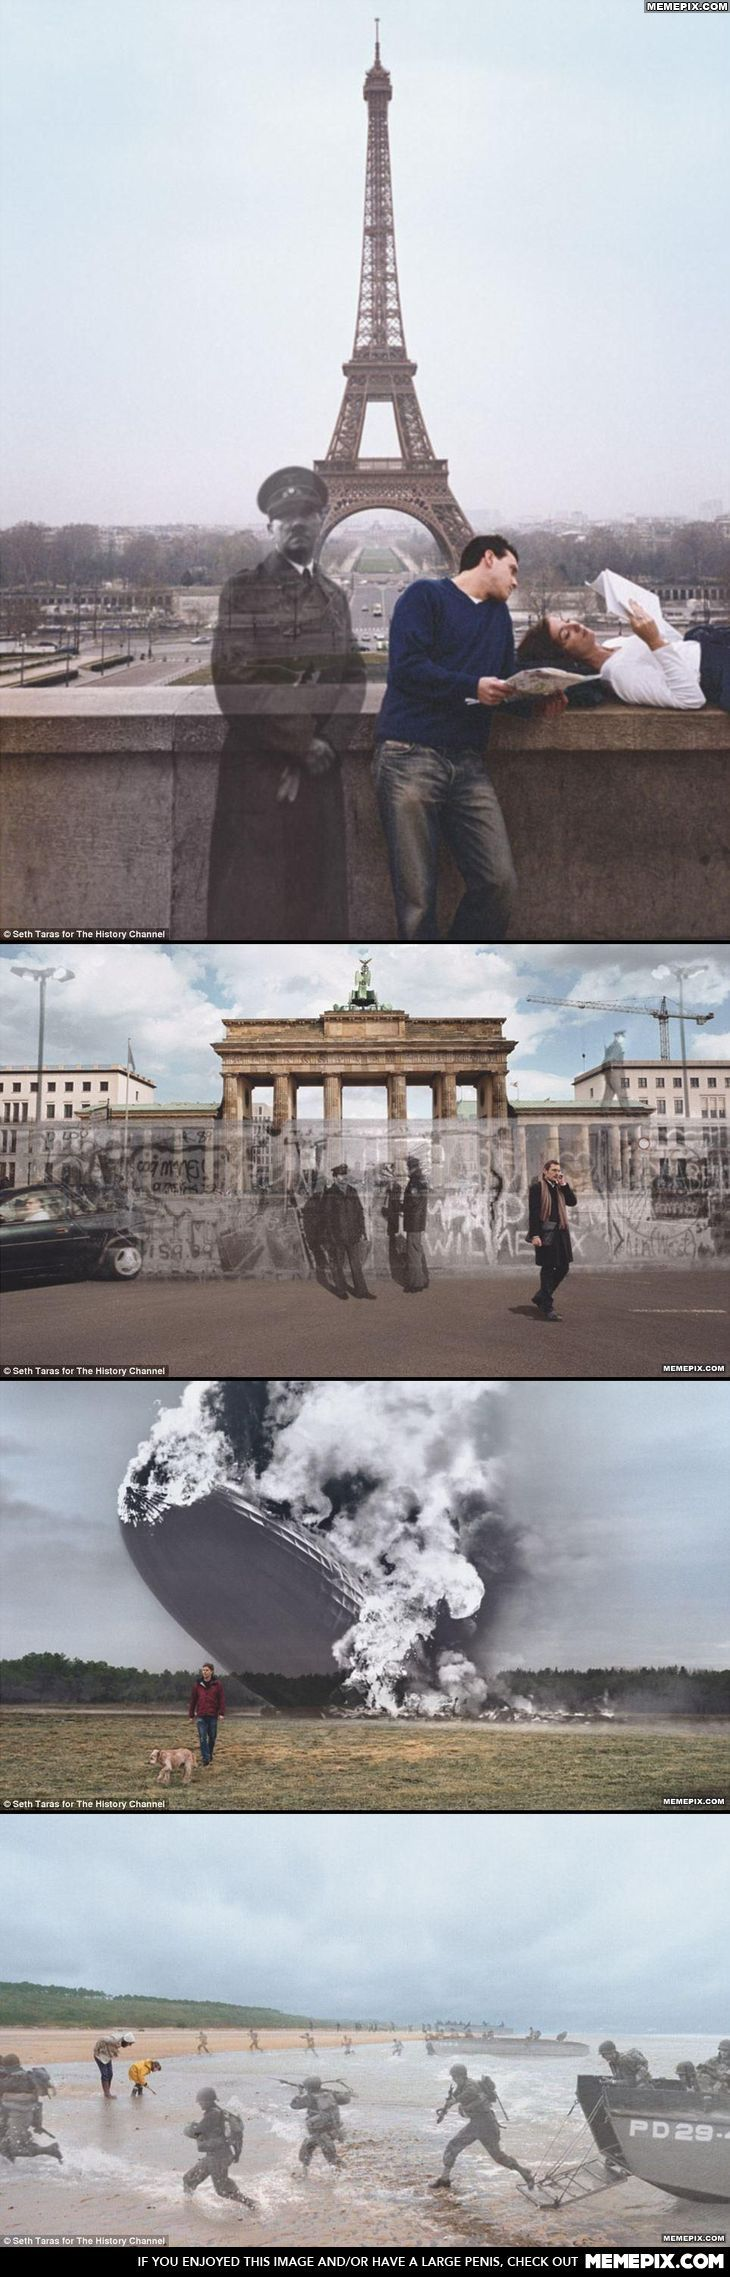 Then and now photos. I'd be afraid if I turned around and saw Hitler's ghost in my Eiffel Tower picture